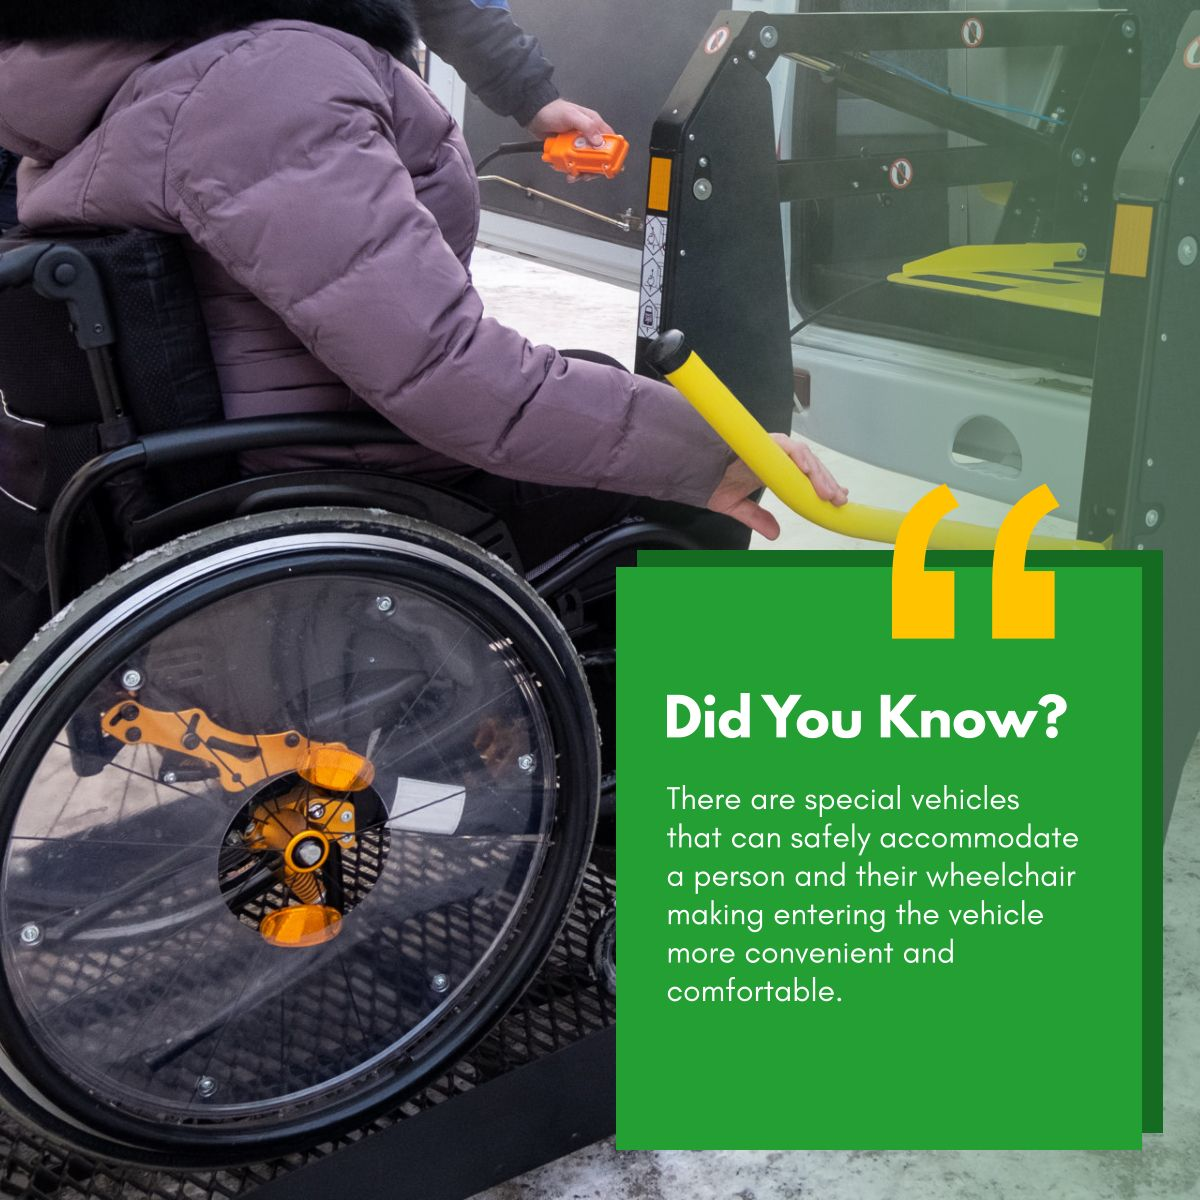 Did you know specialvehicles